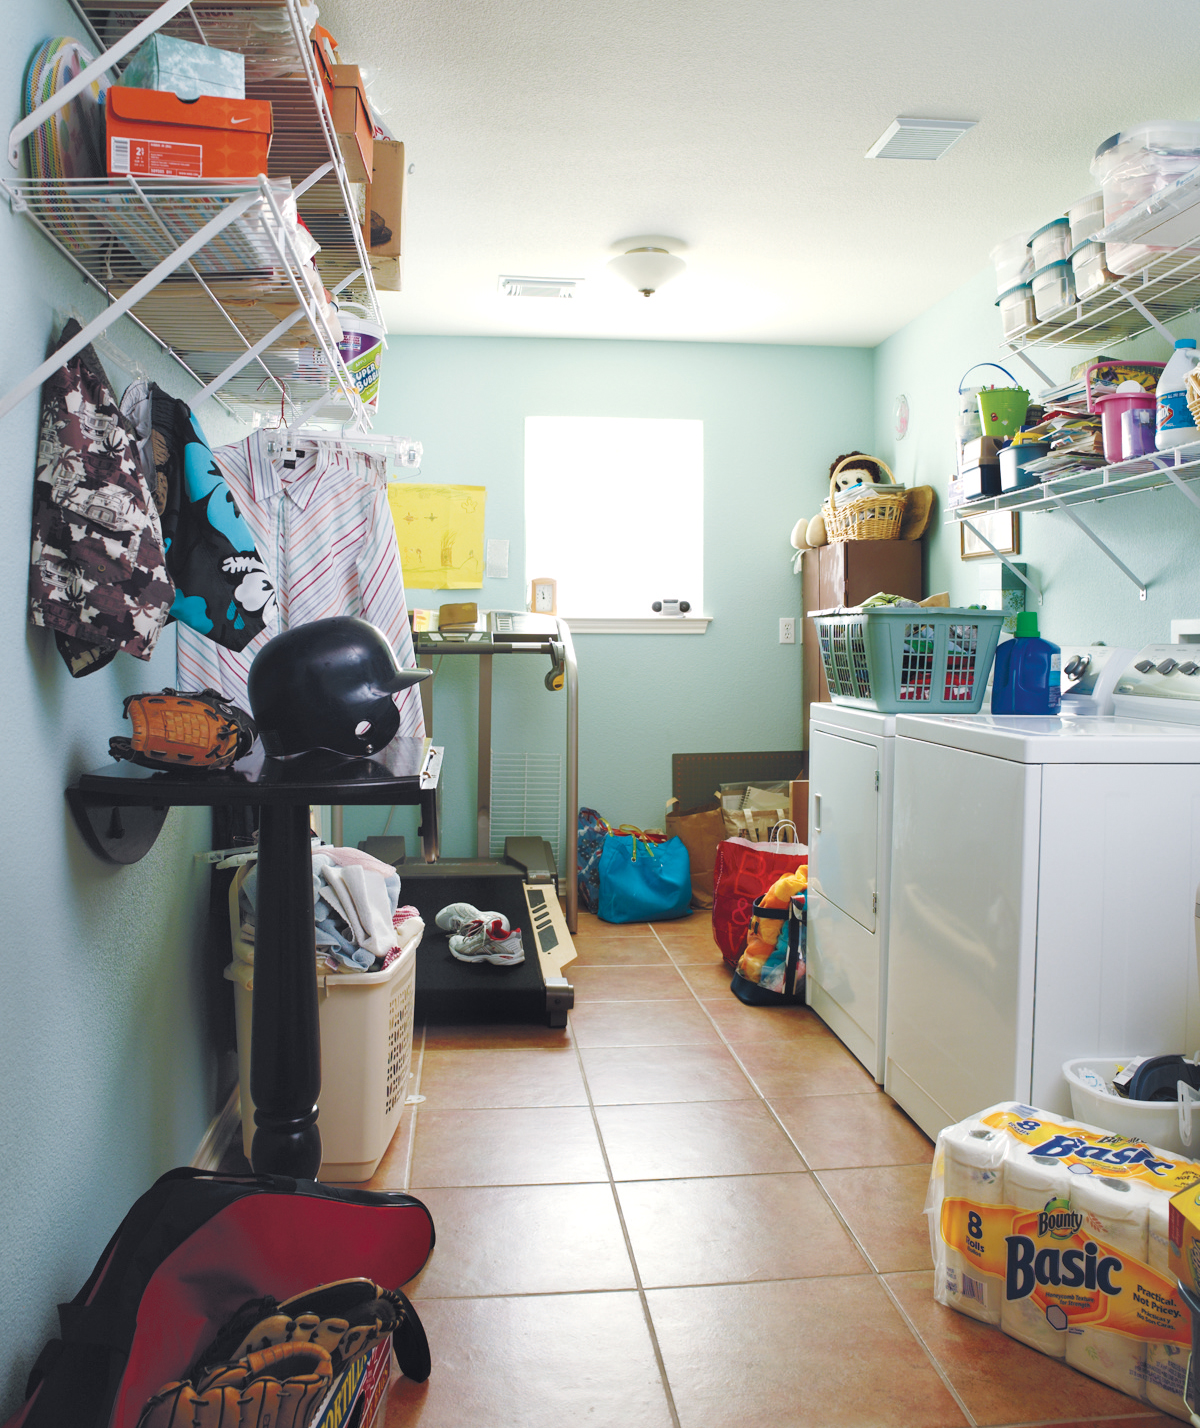 A messy laundry room